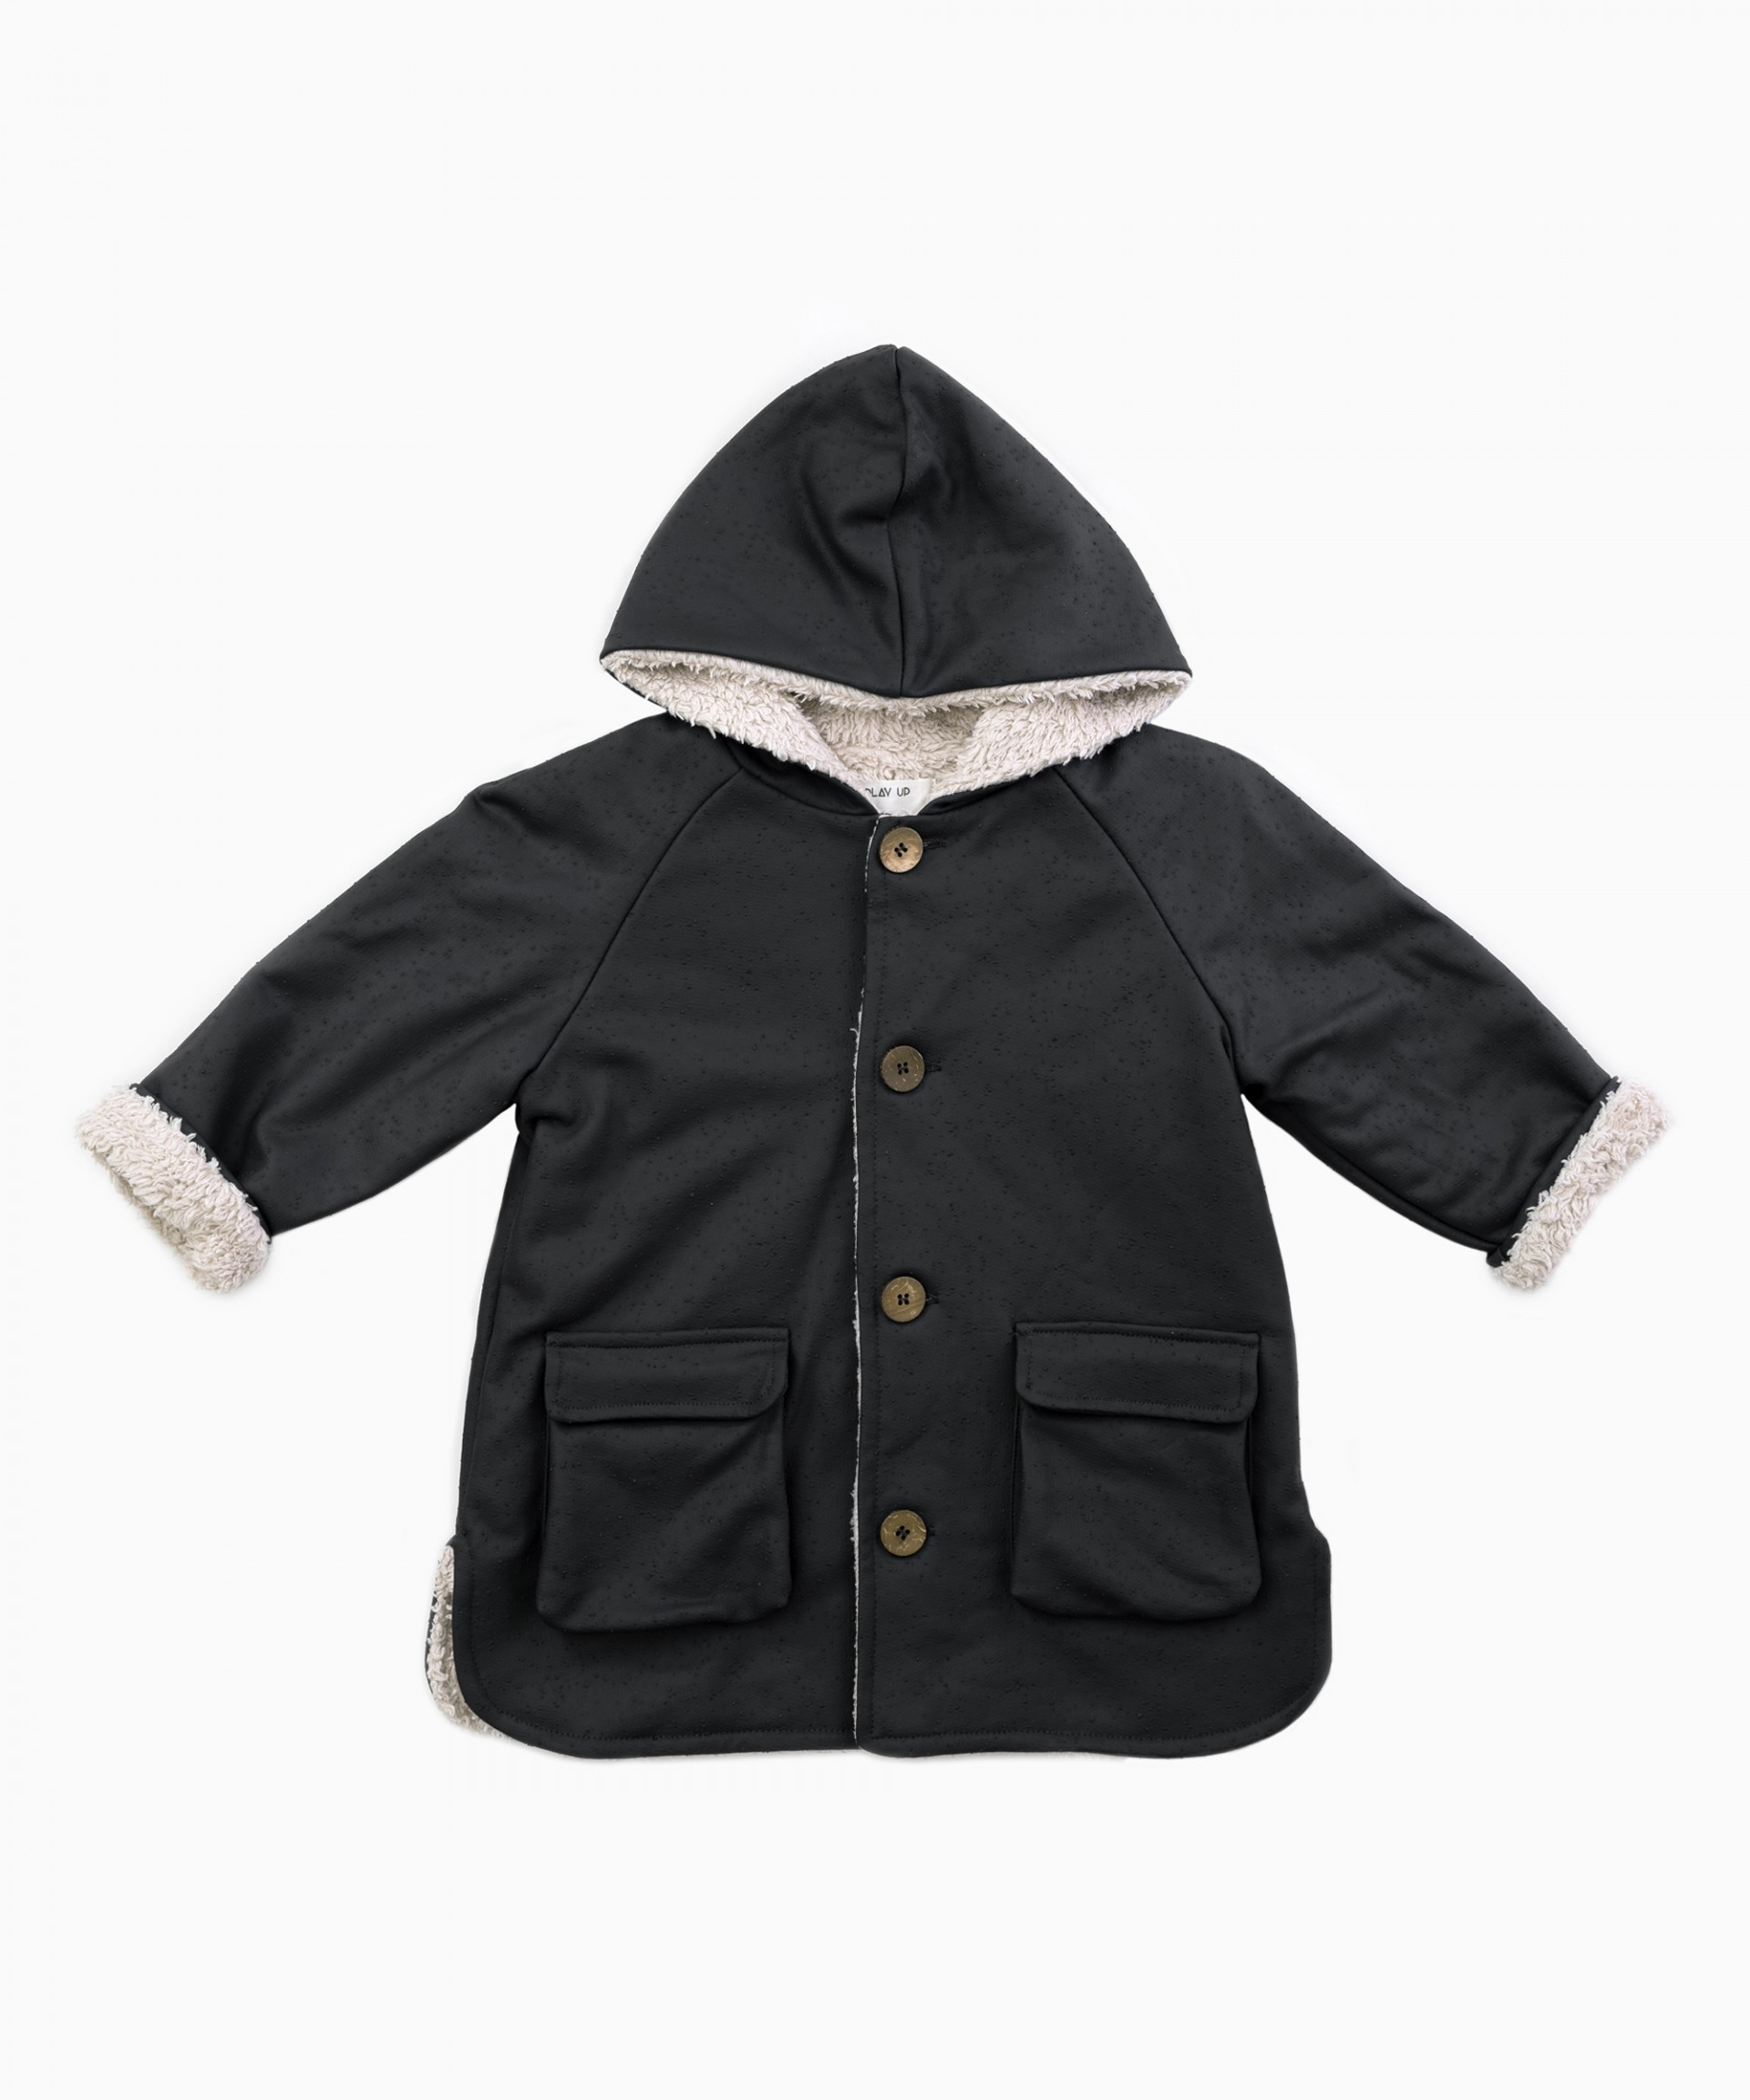 Chaqueta impermeable con capucha | Woodwork